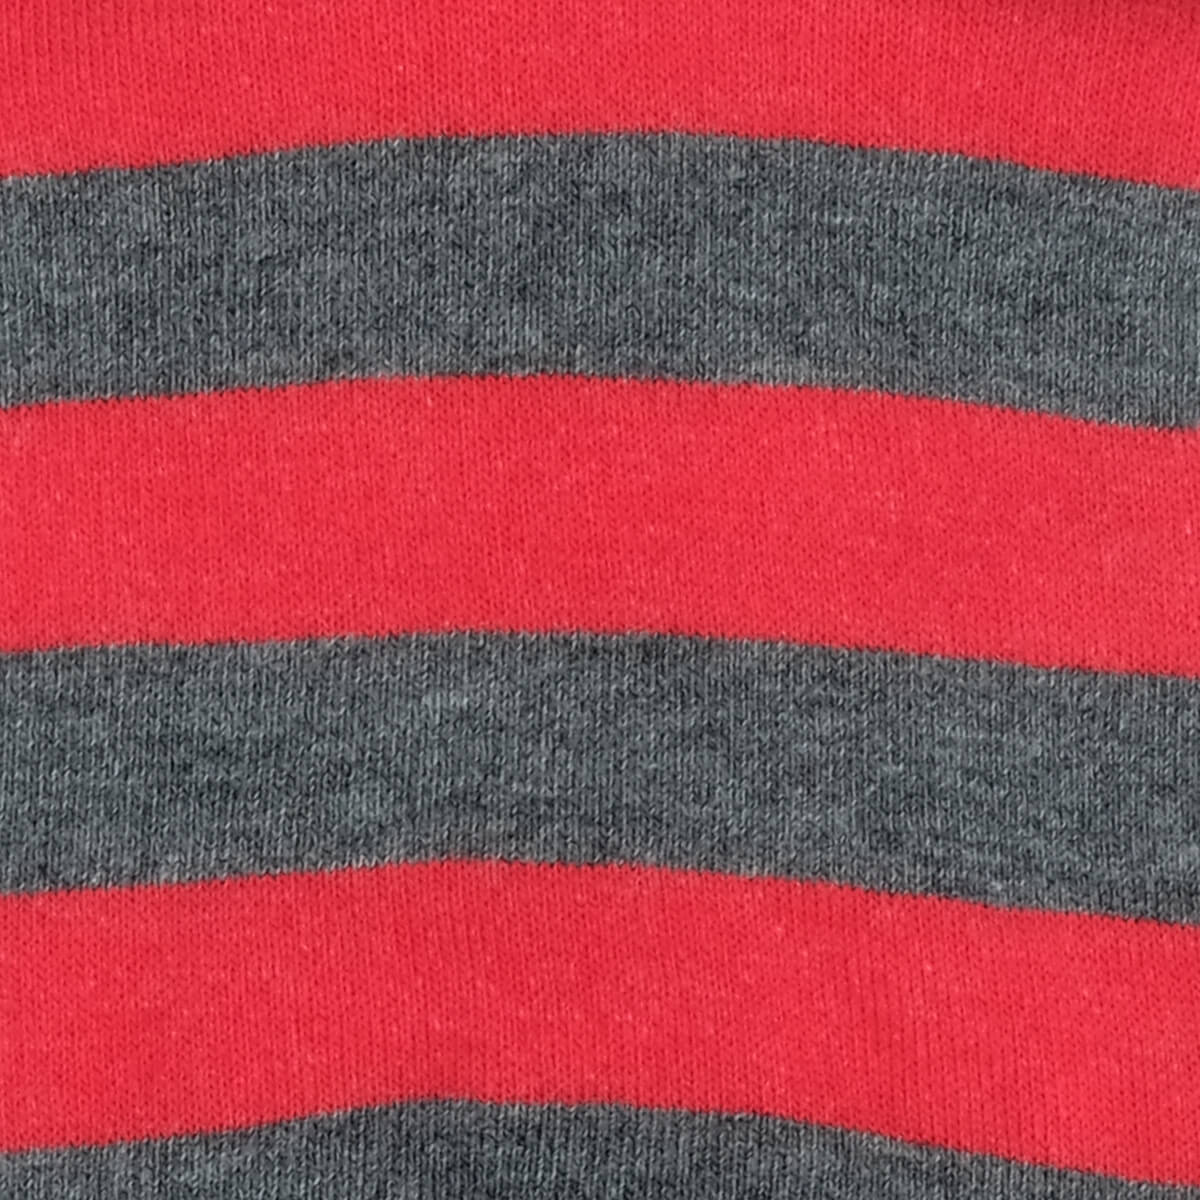 Womens Socks - Rugby Stripes Women's Socks - Red⎪Etiquette Clothiers